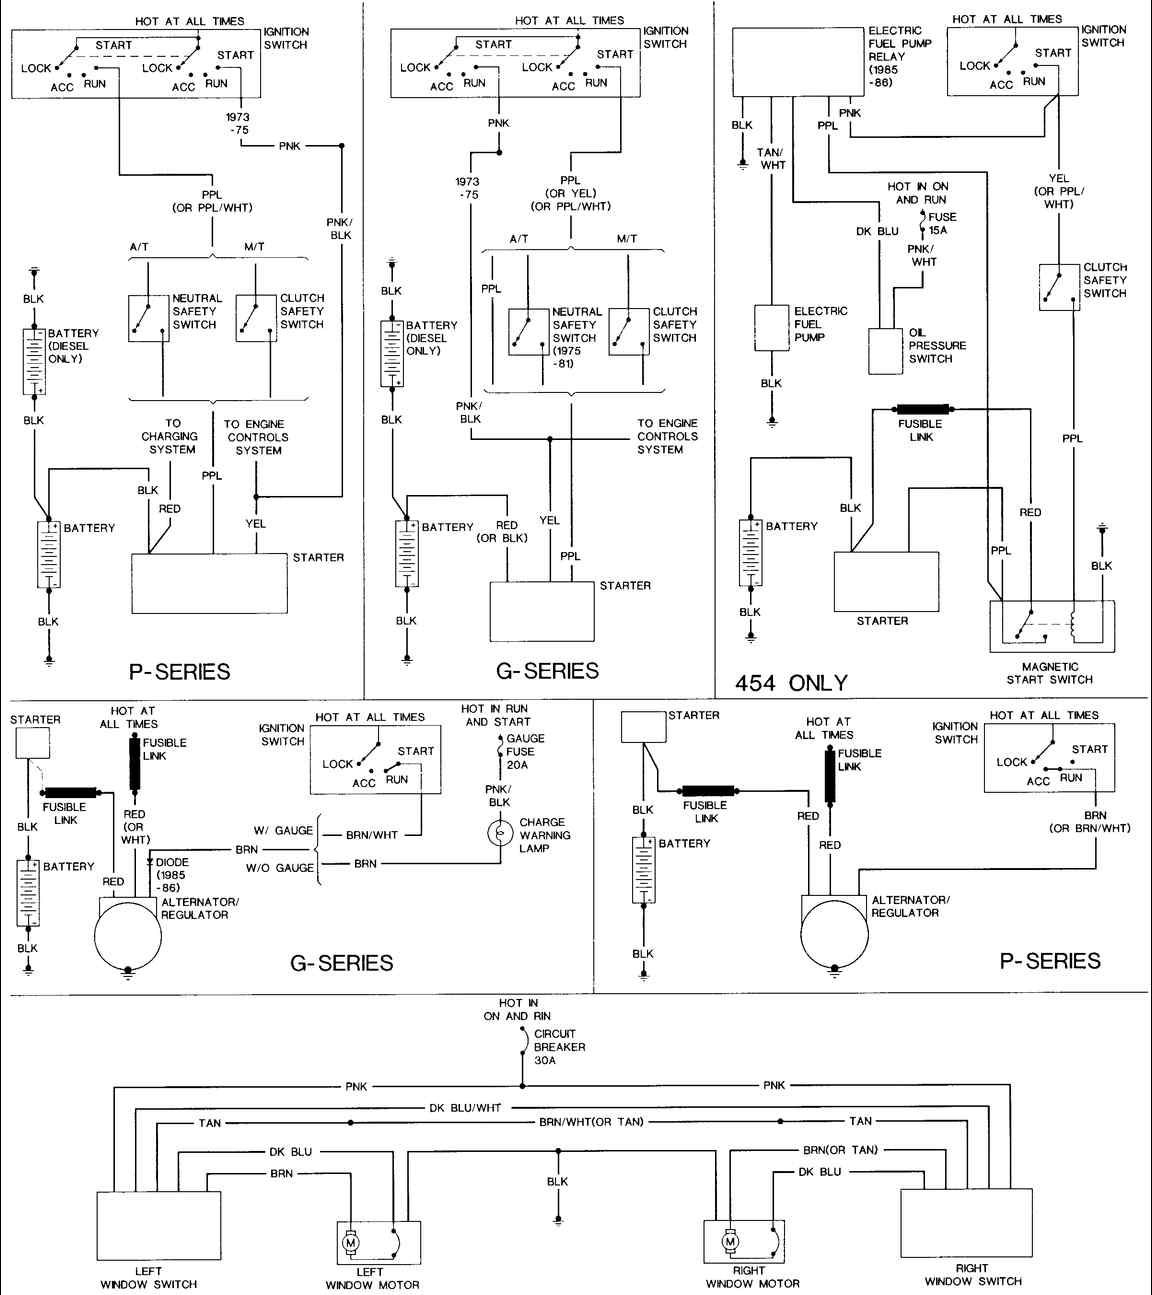 0c73623a181dc376dbb4777e2029d285 85 chevy truck wiring diagram 85 chevy van the steering column  at bakdesigns.co